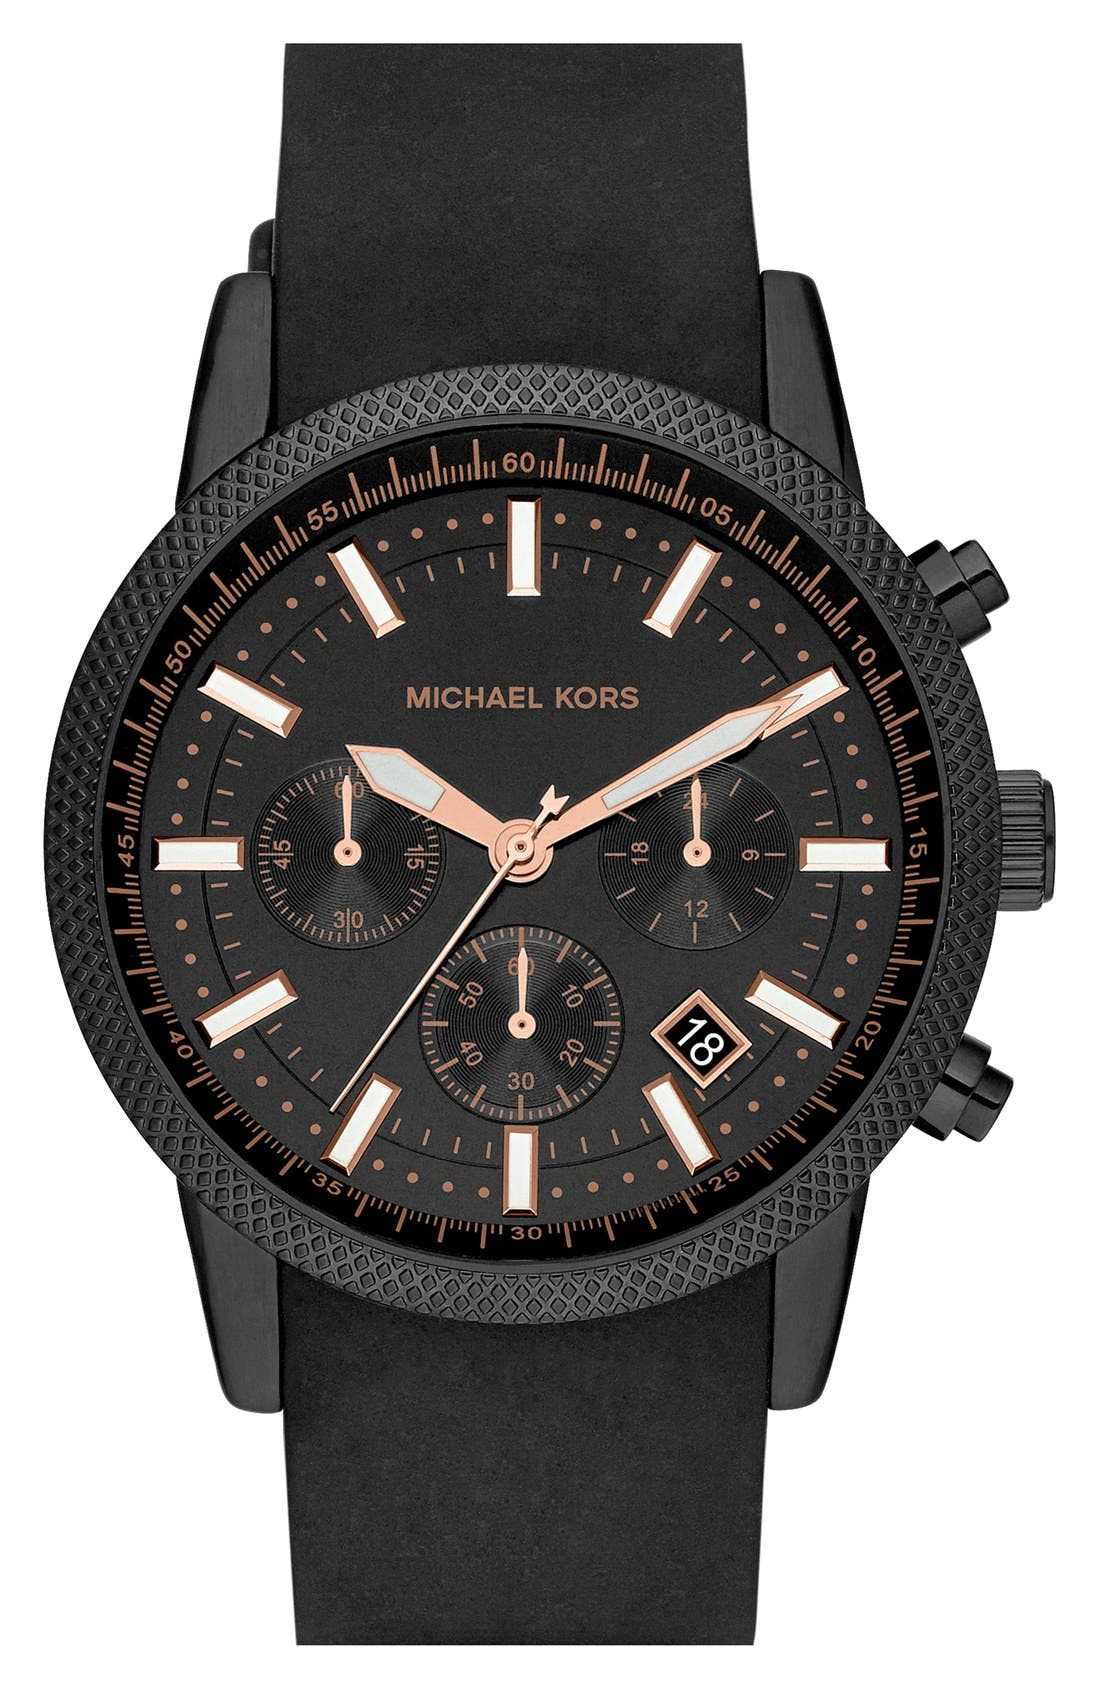 Main Image - Michael Kors 'Scout' Chronograph Silicone Strap Watch, 43mm